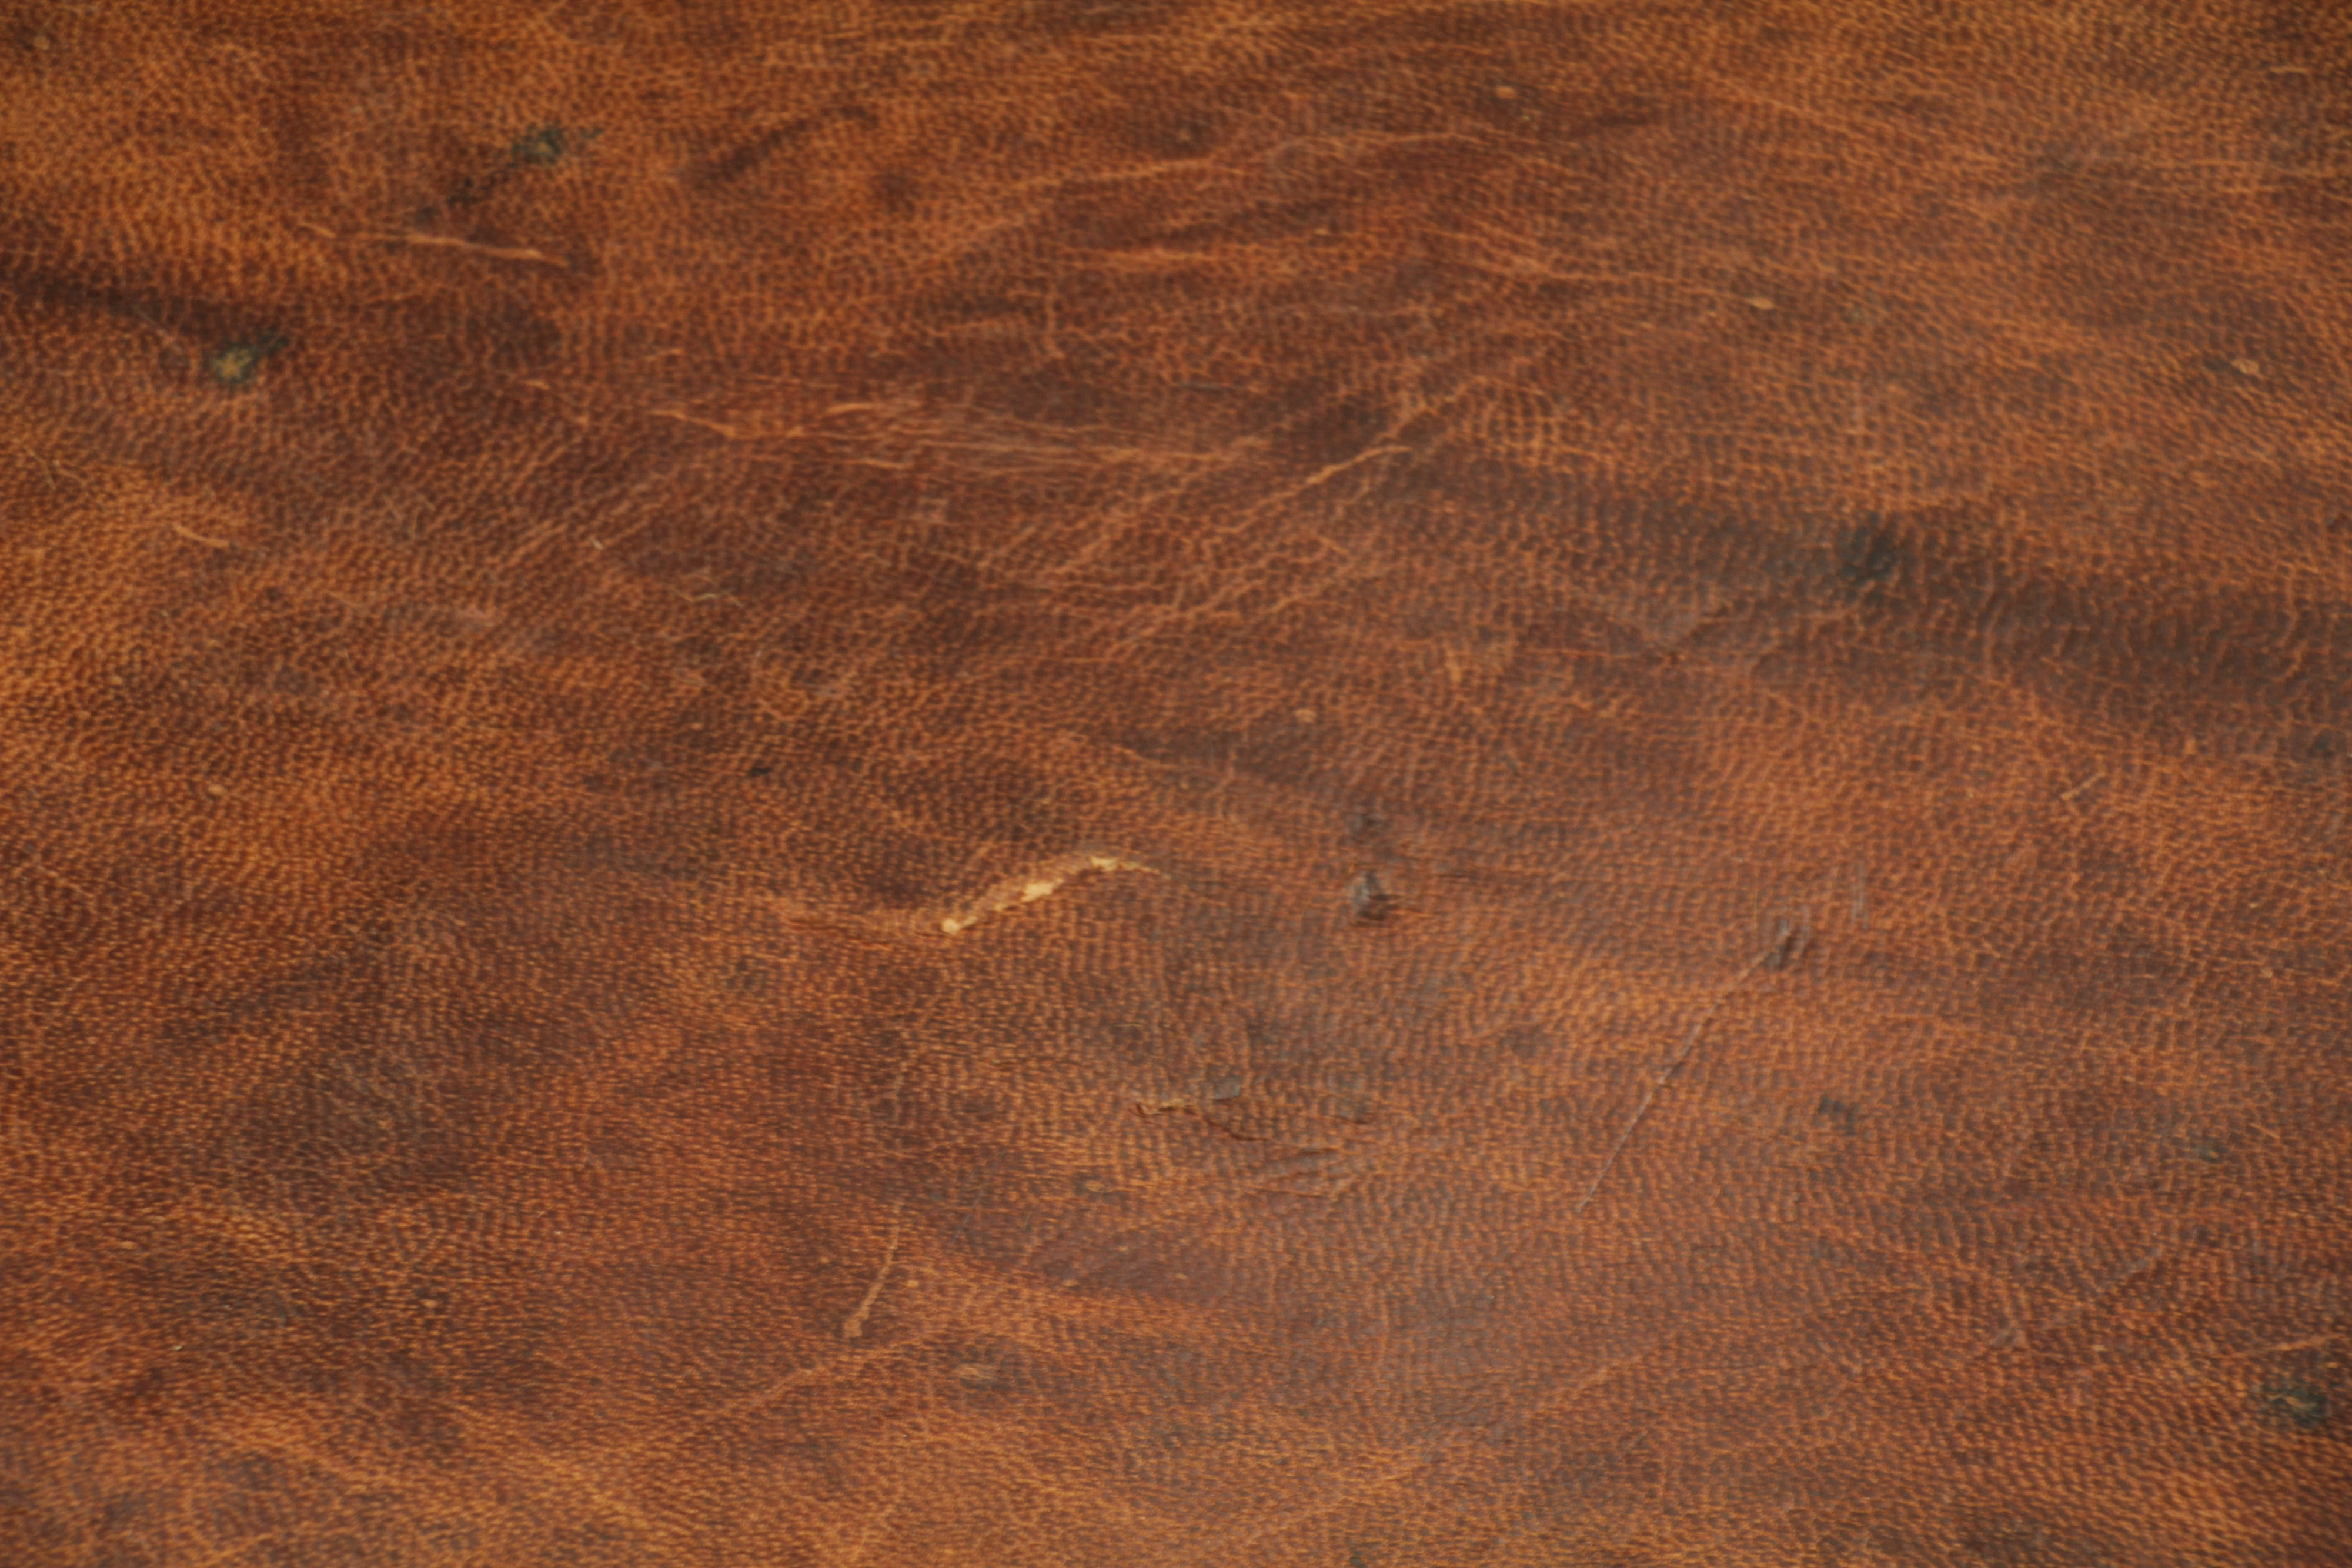 Brown Leather Texture Pattern Material Stock Photo Old Vintage Wallpaper